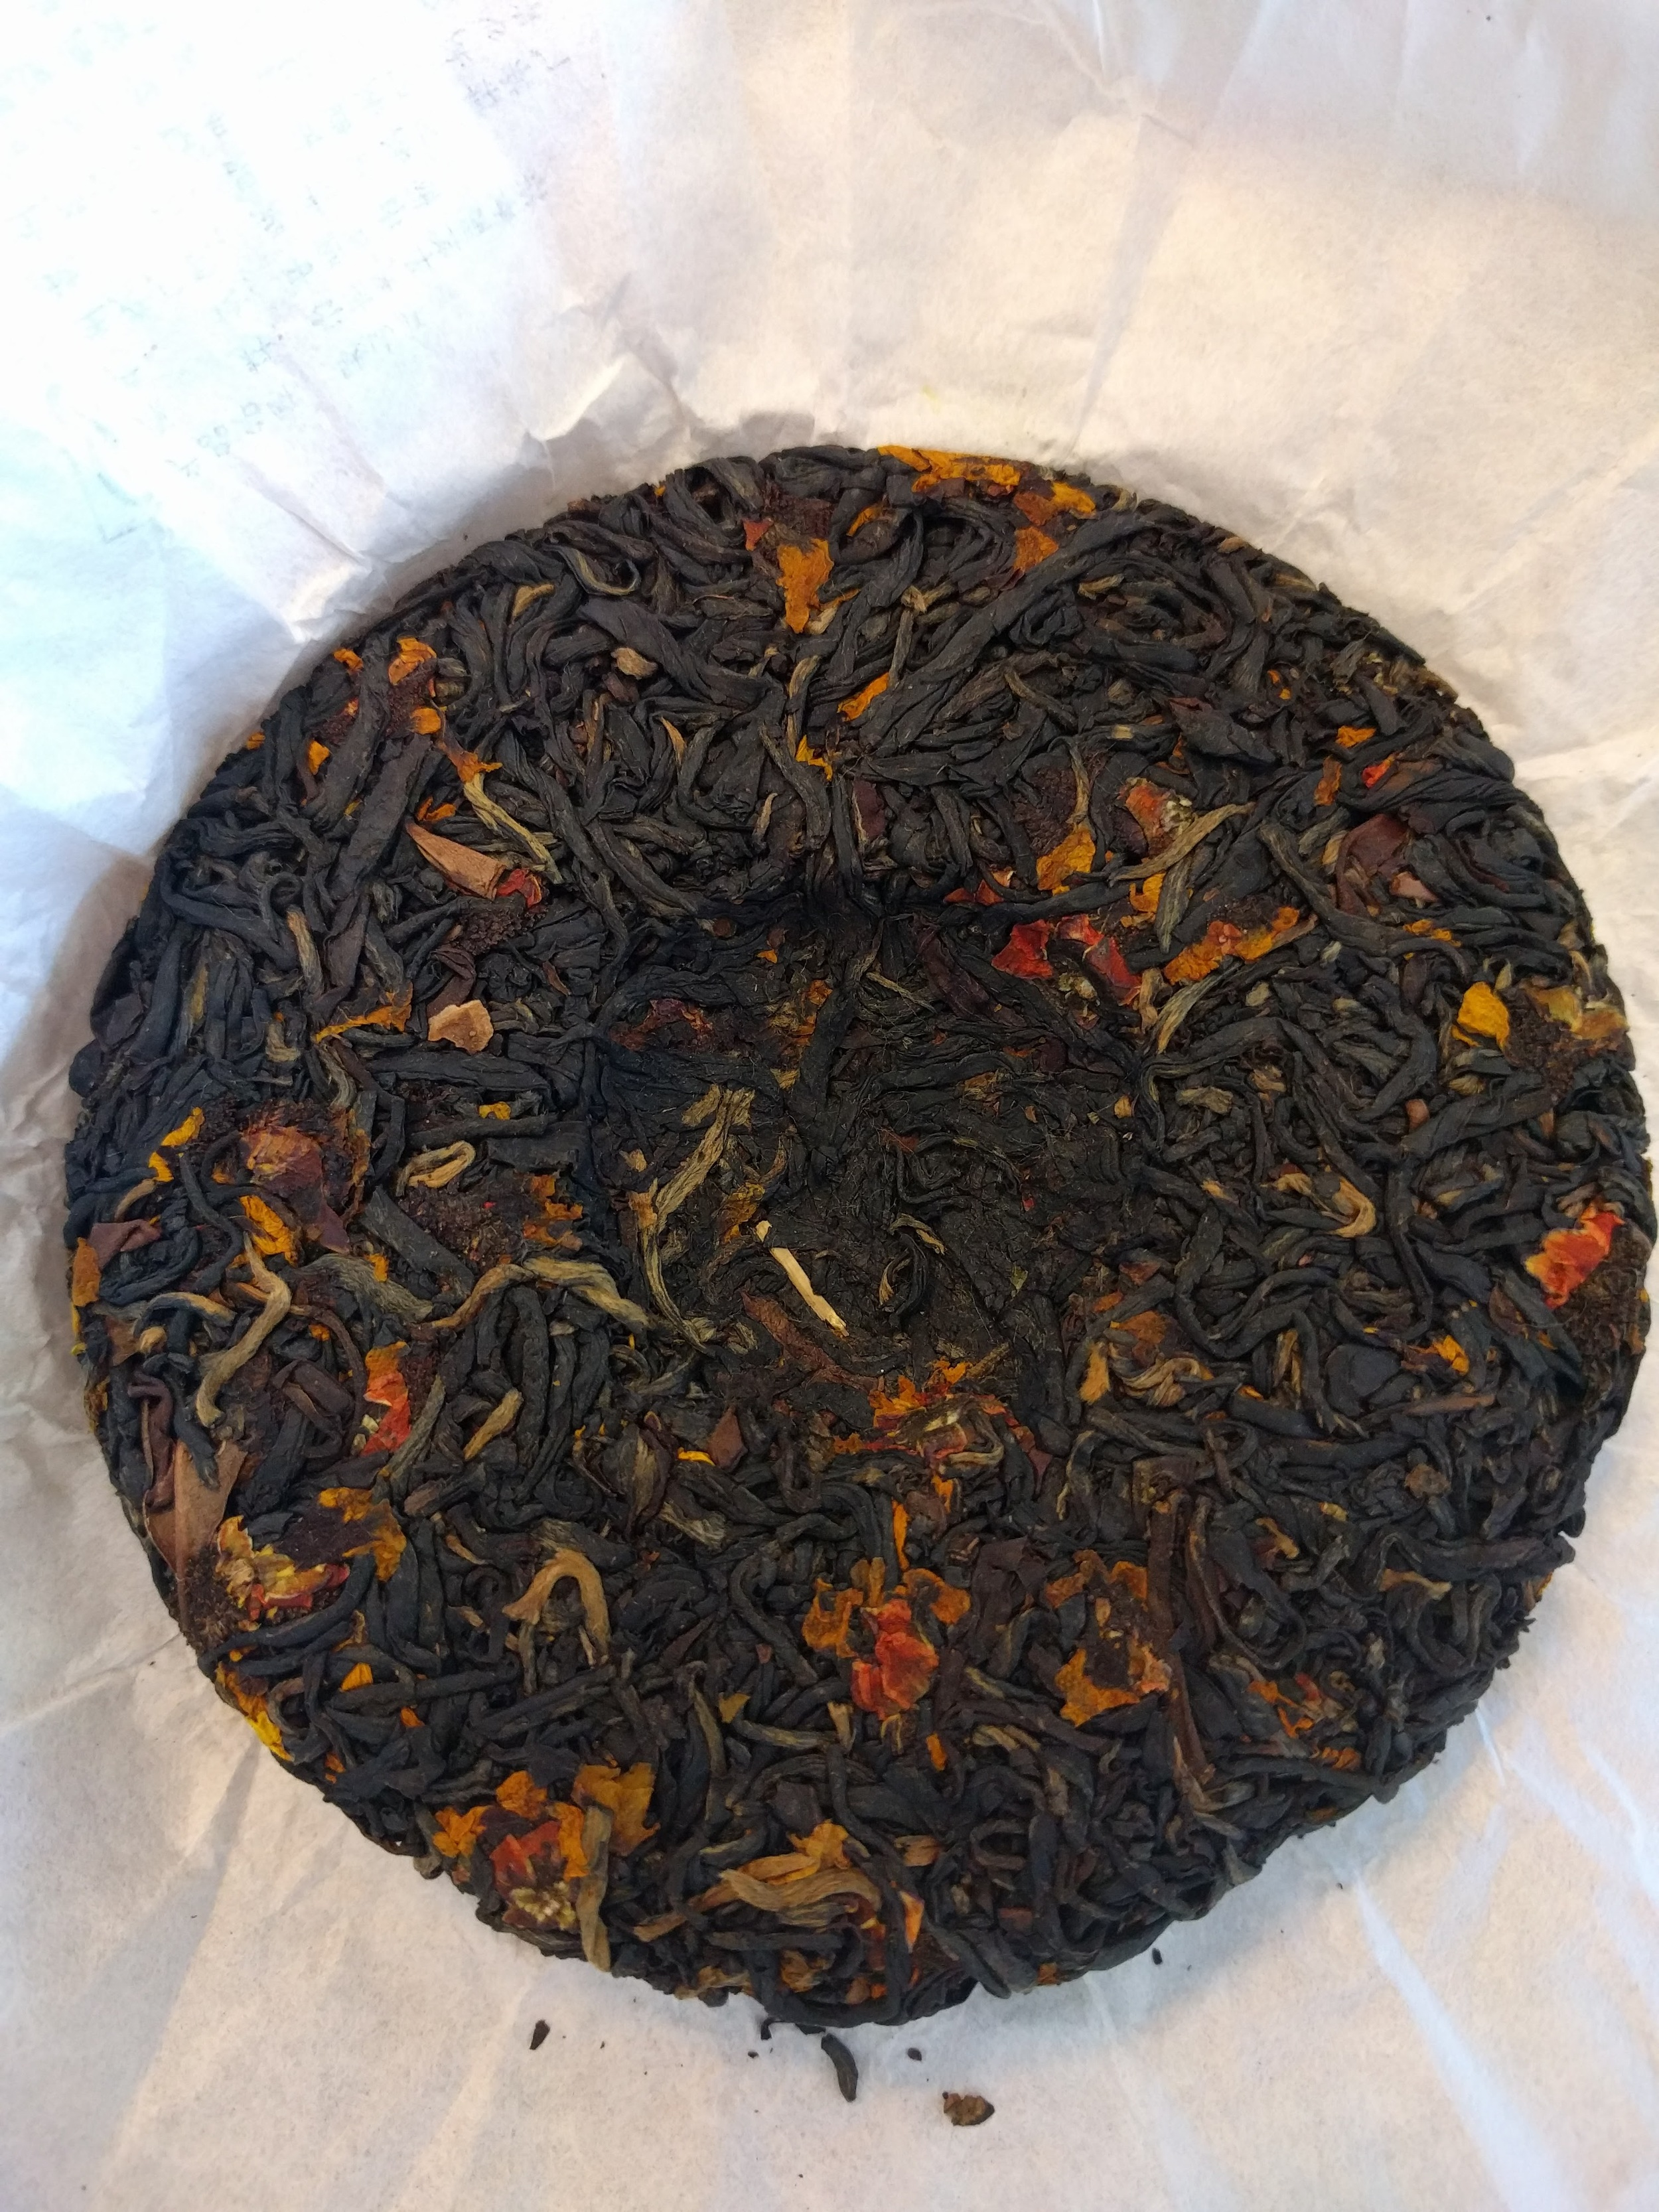 I find the pressed chrysanthemum looks beautiful contrasting the Dianhong wild purple black tea.